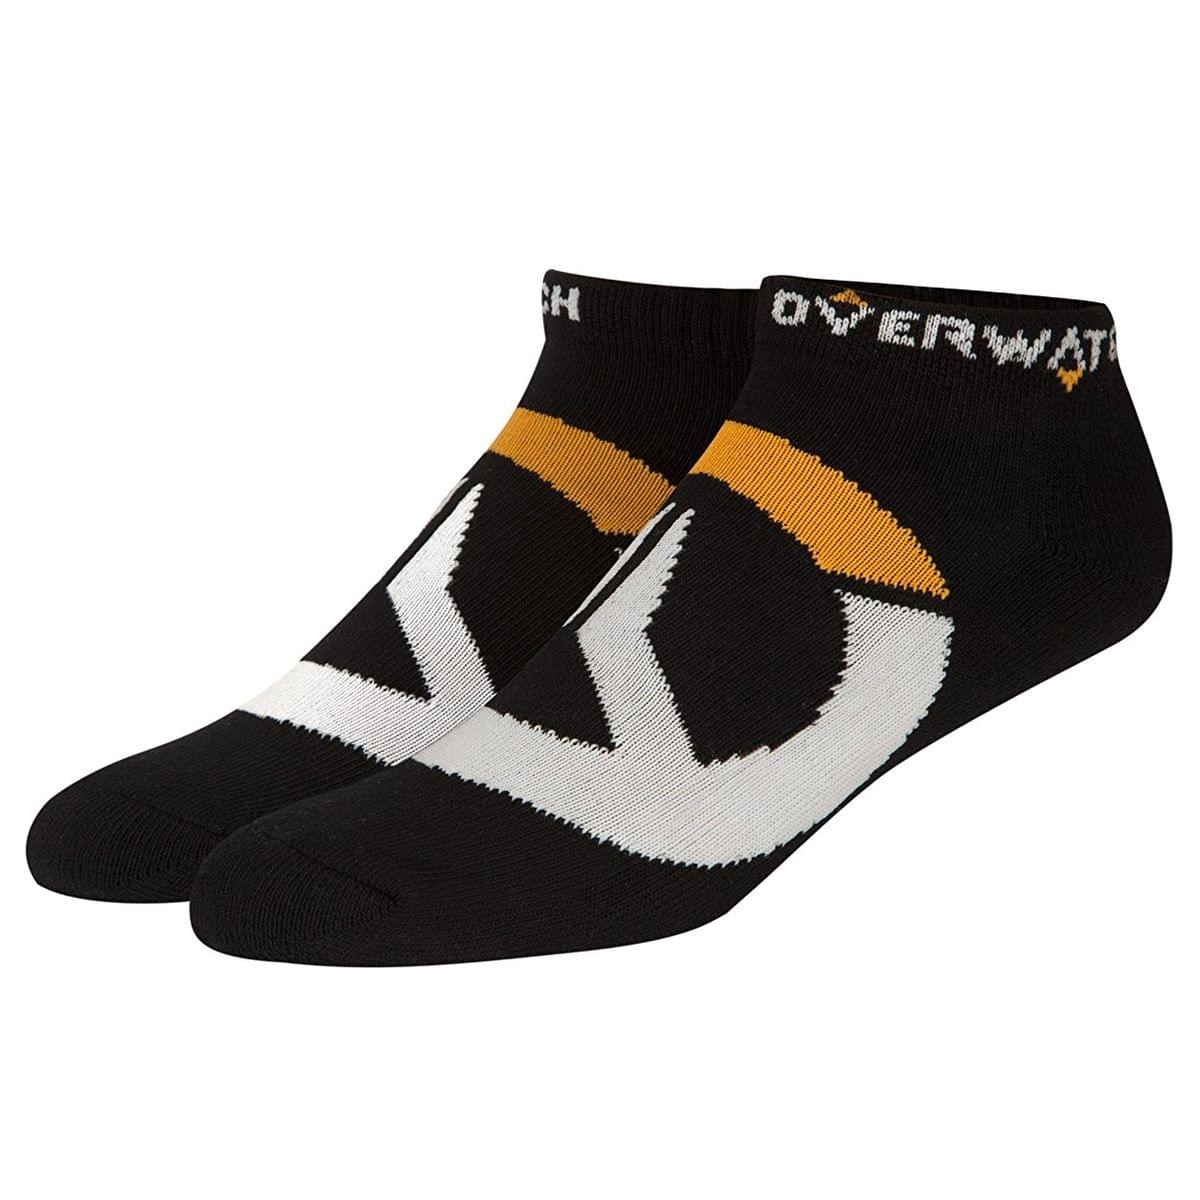 Overwatch Logo Ankle Socks 3 Pack, Black, One Size